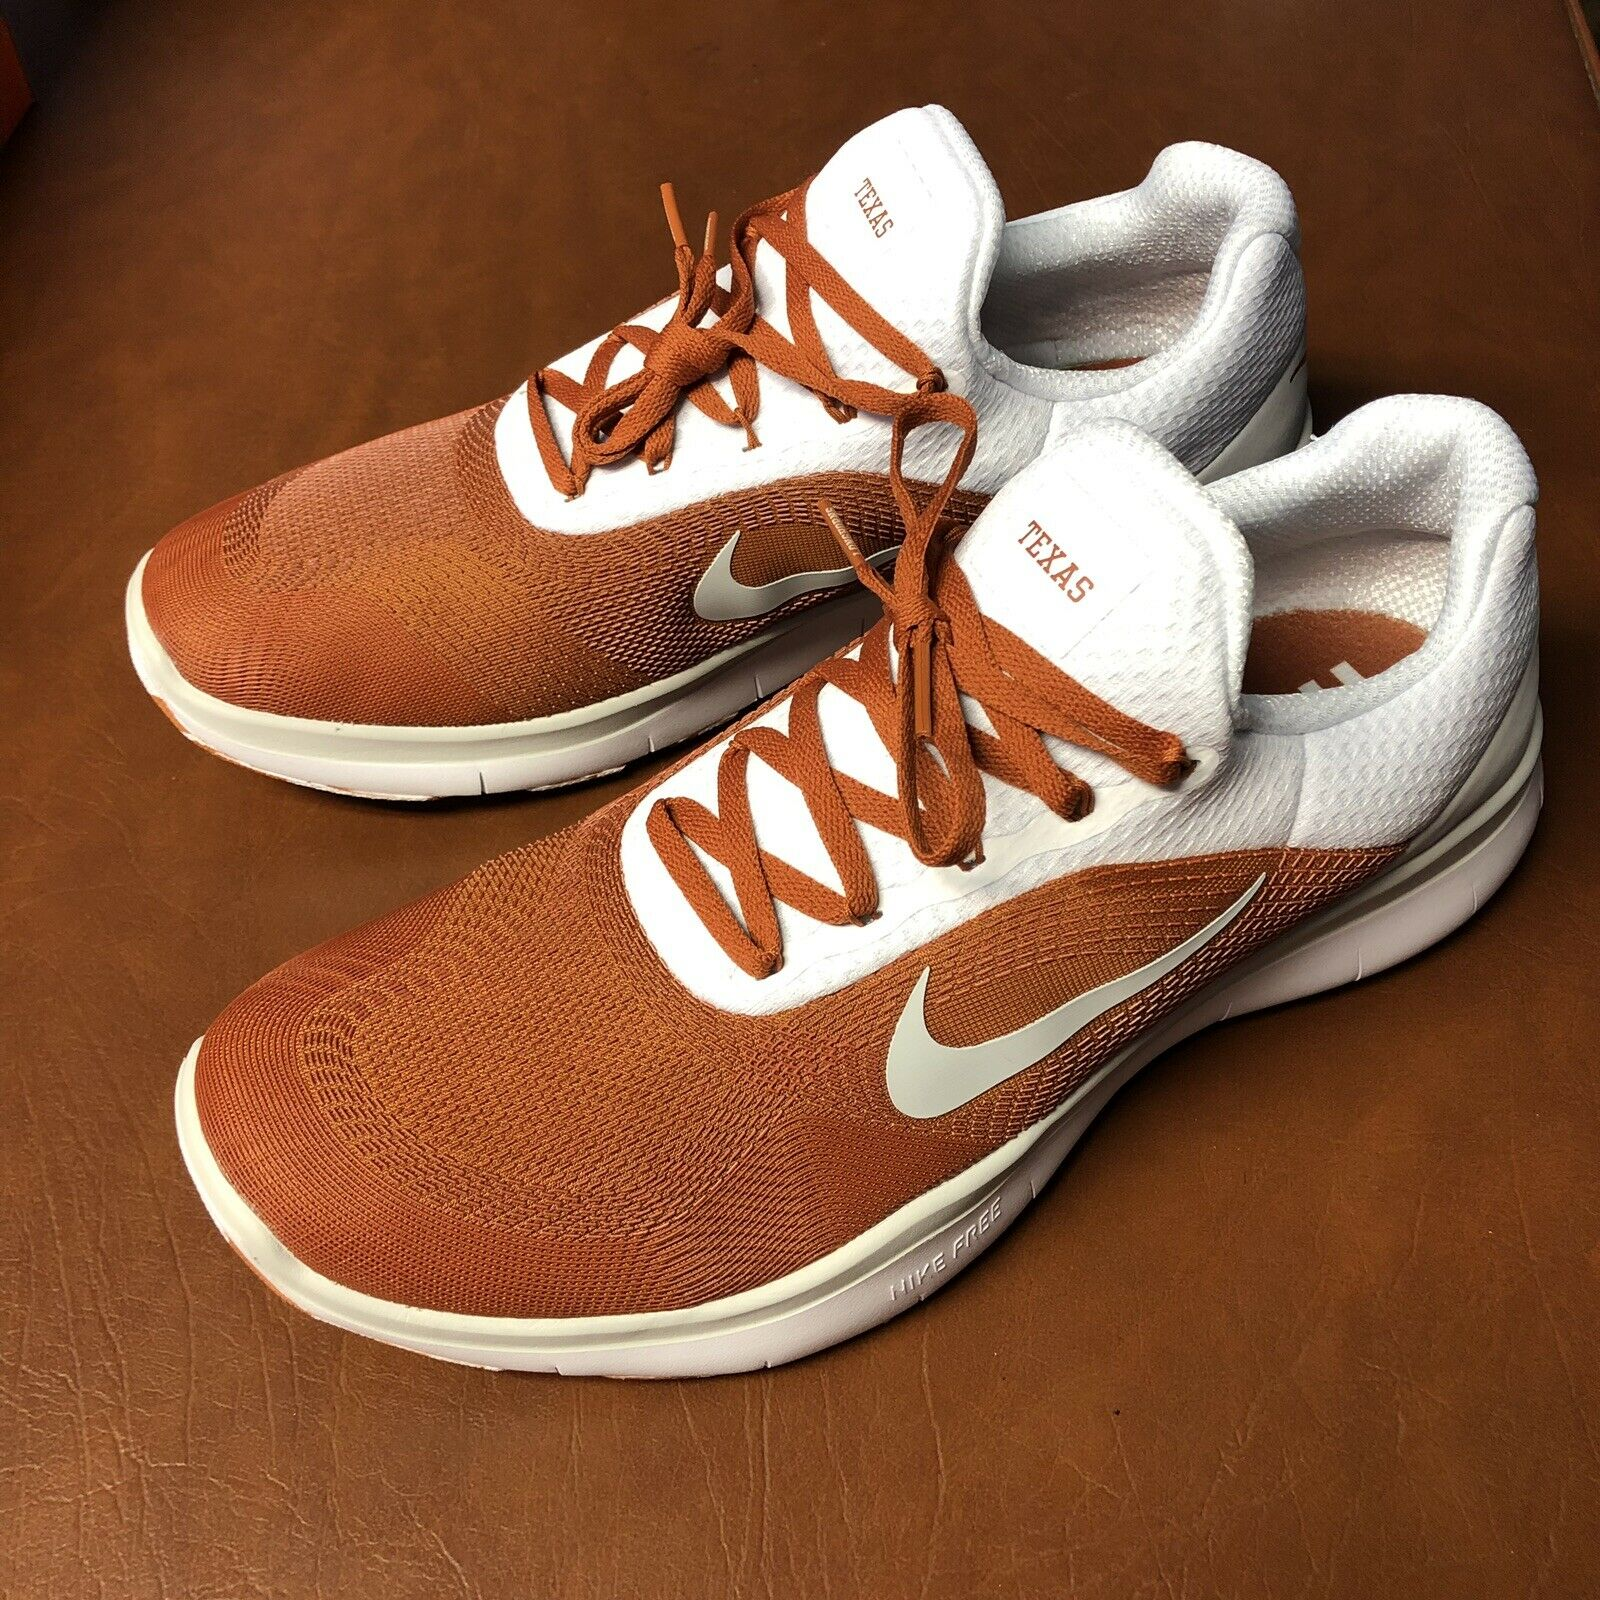 Nike Texas Longhorns Free Trainer V7 Week Zero shoes AA0881-800 Size 12